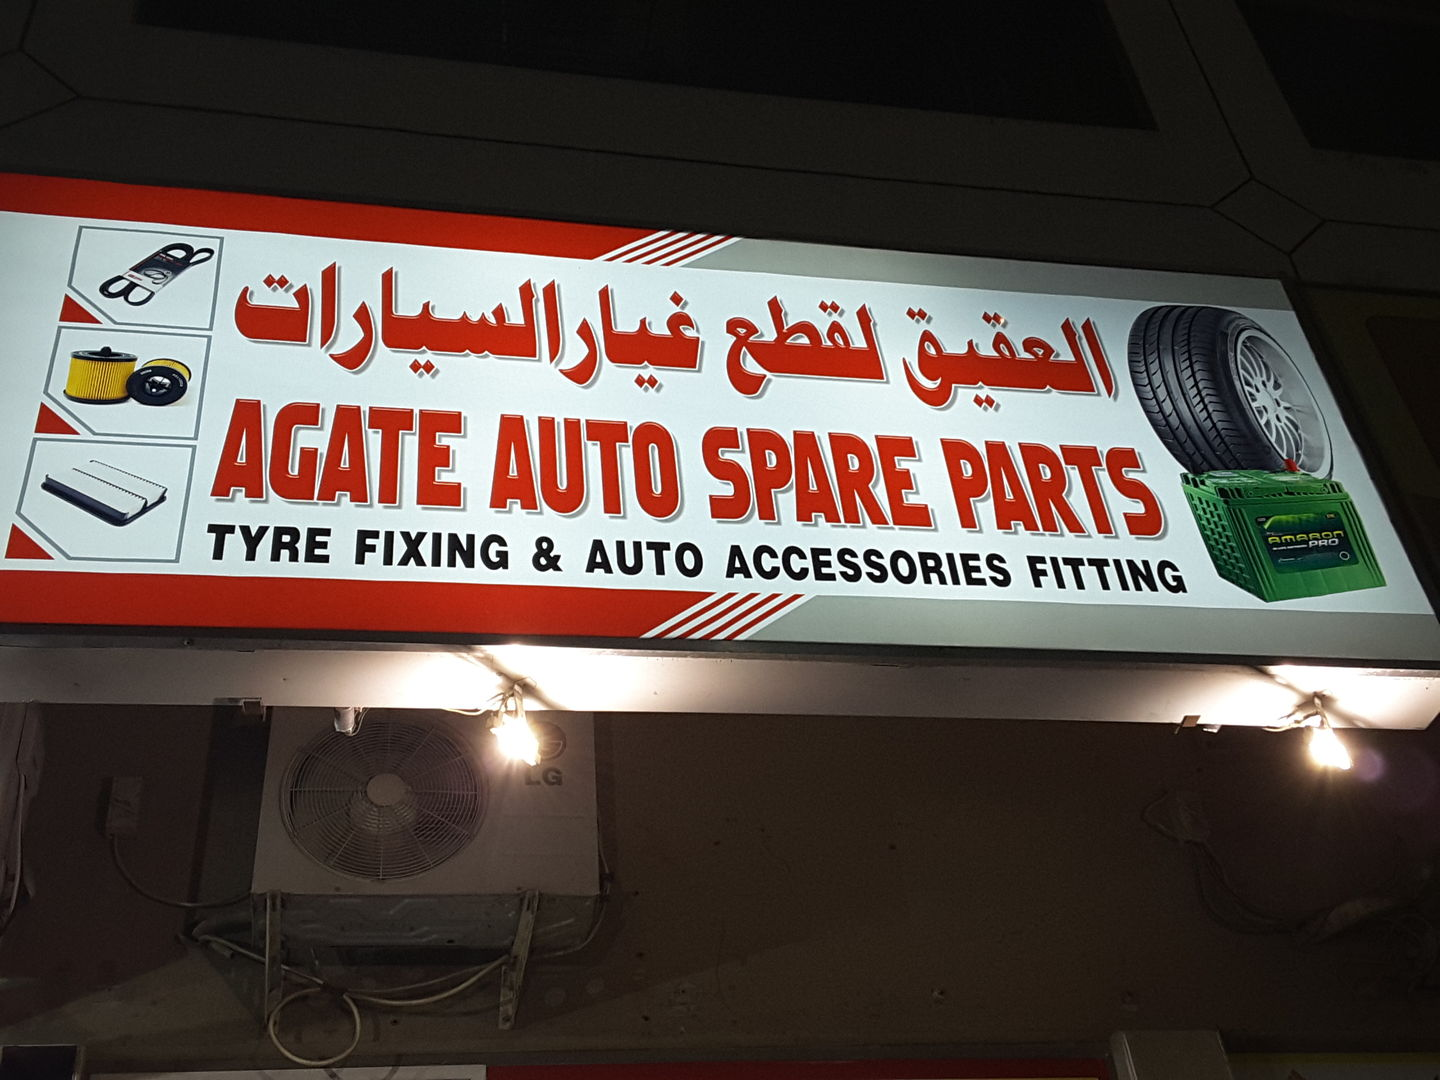 Agate Auto Spare Parts, (Distributors & Wholesalers) in Hor